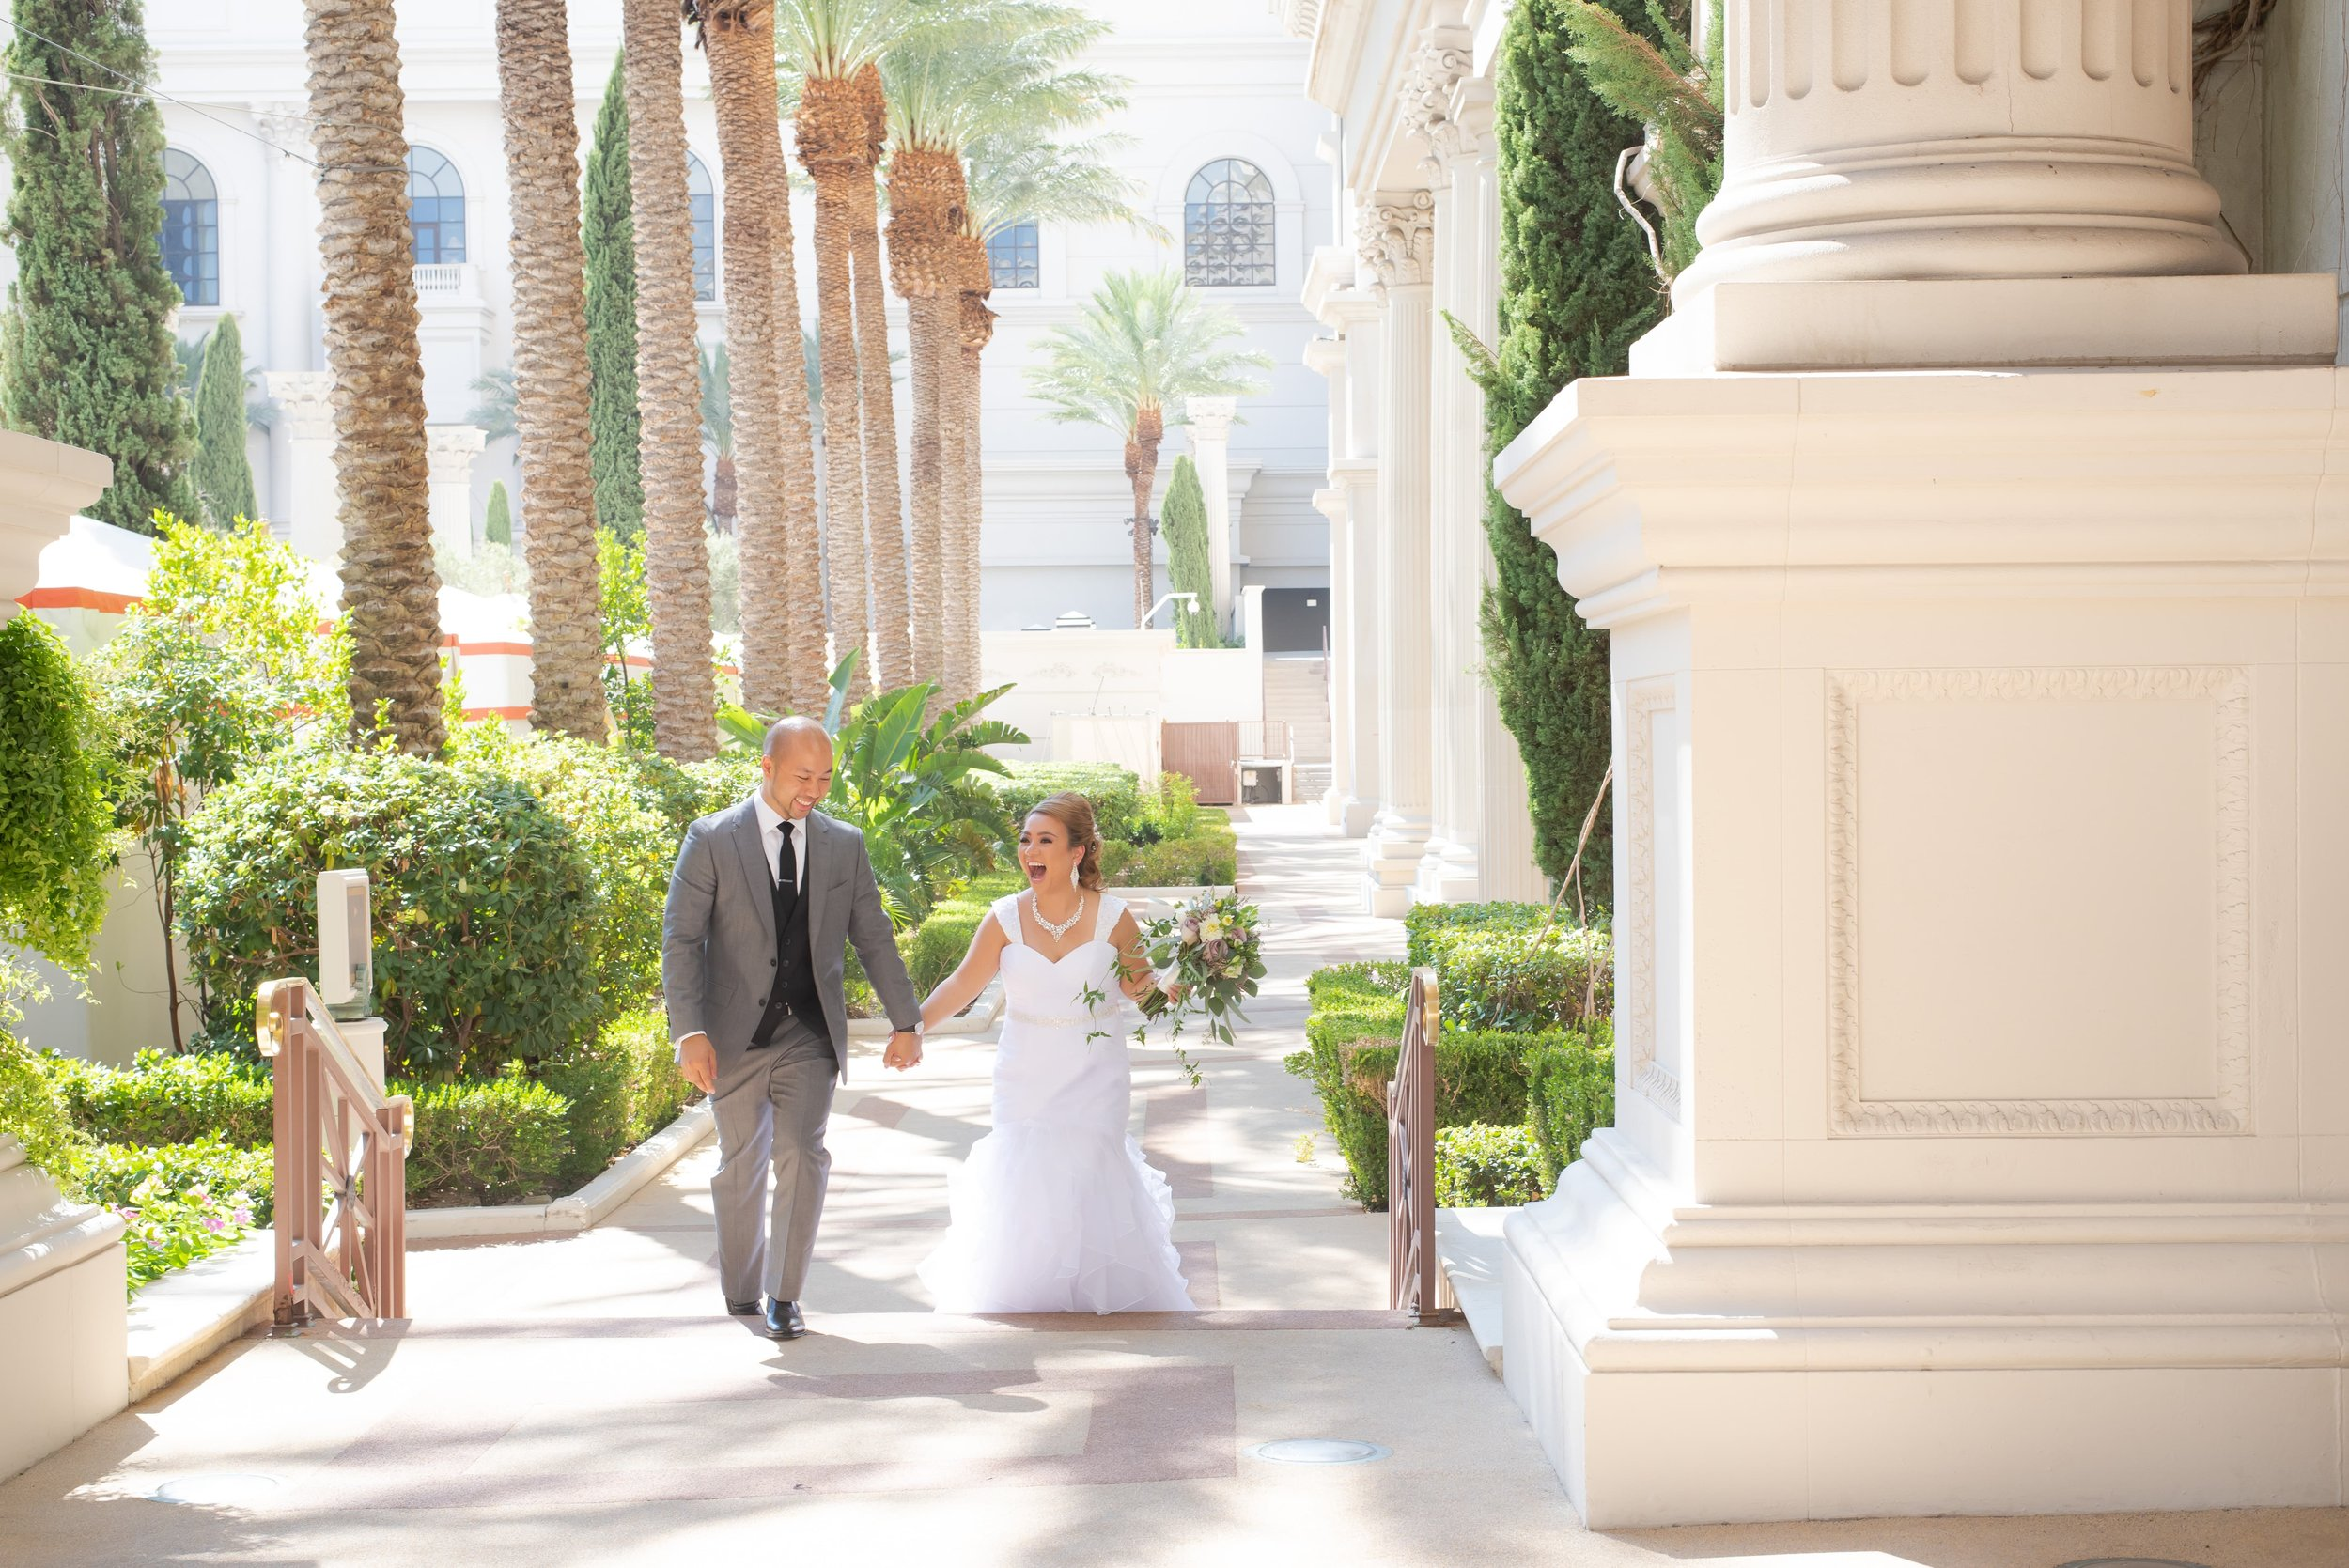 Bride and groom walking up an outdoor staircase lined with palm trees and stone pillars.